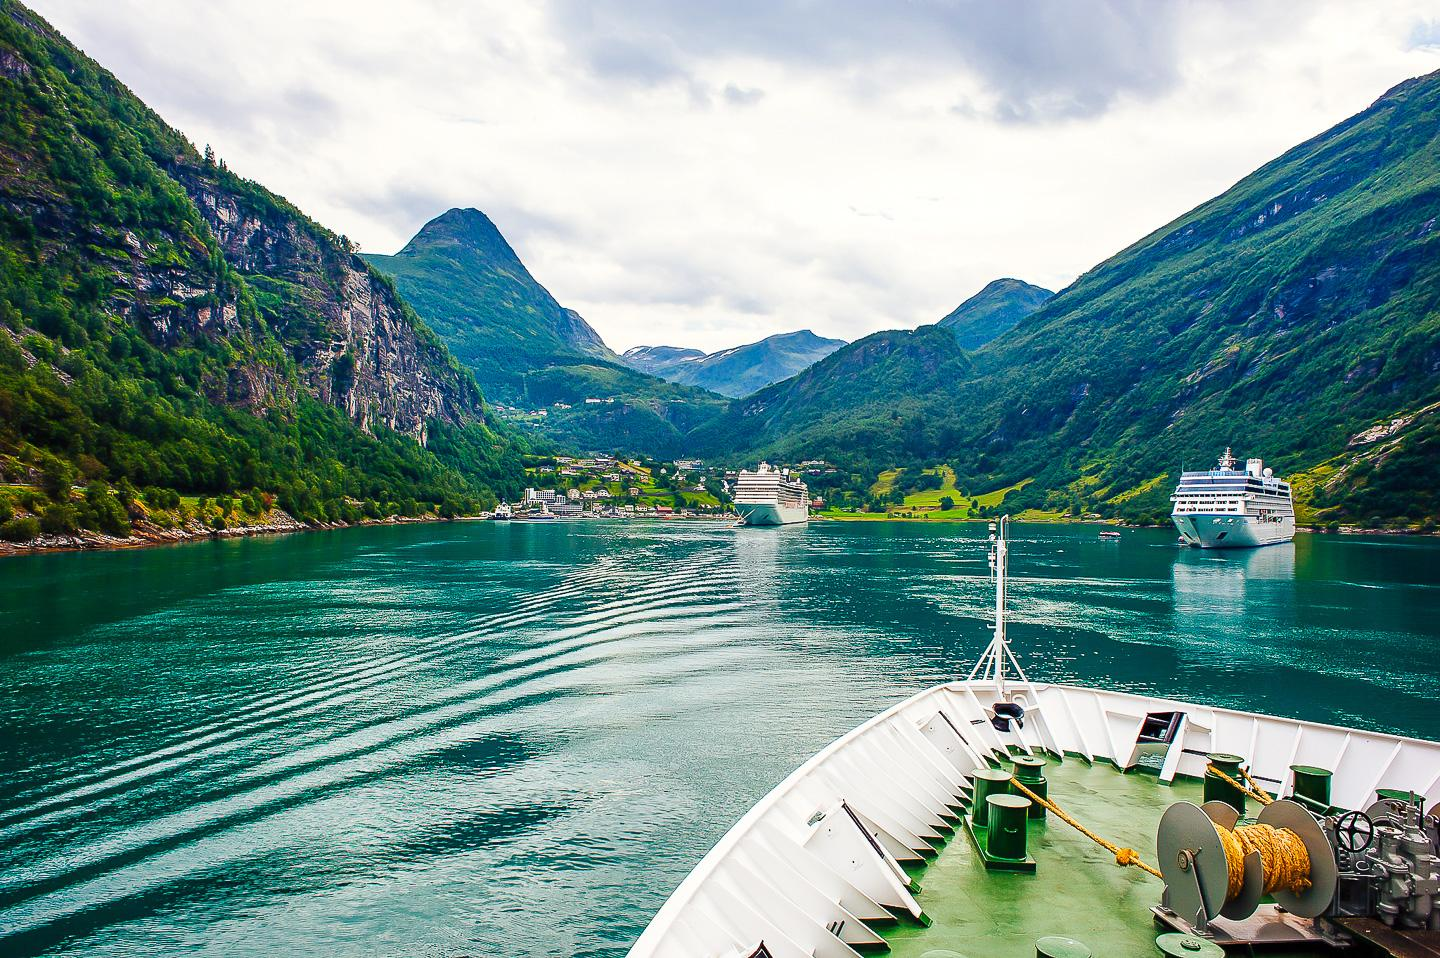 NRK Summer Boat Norwegian tv shows